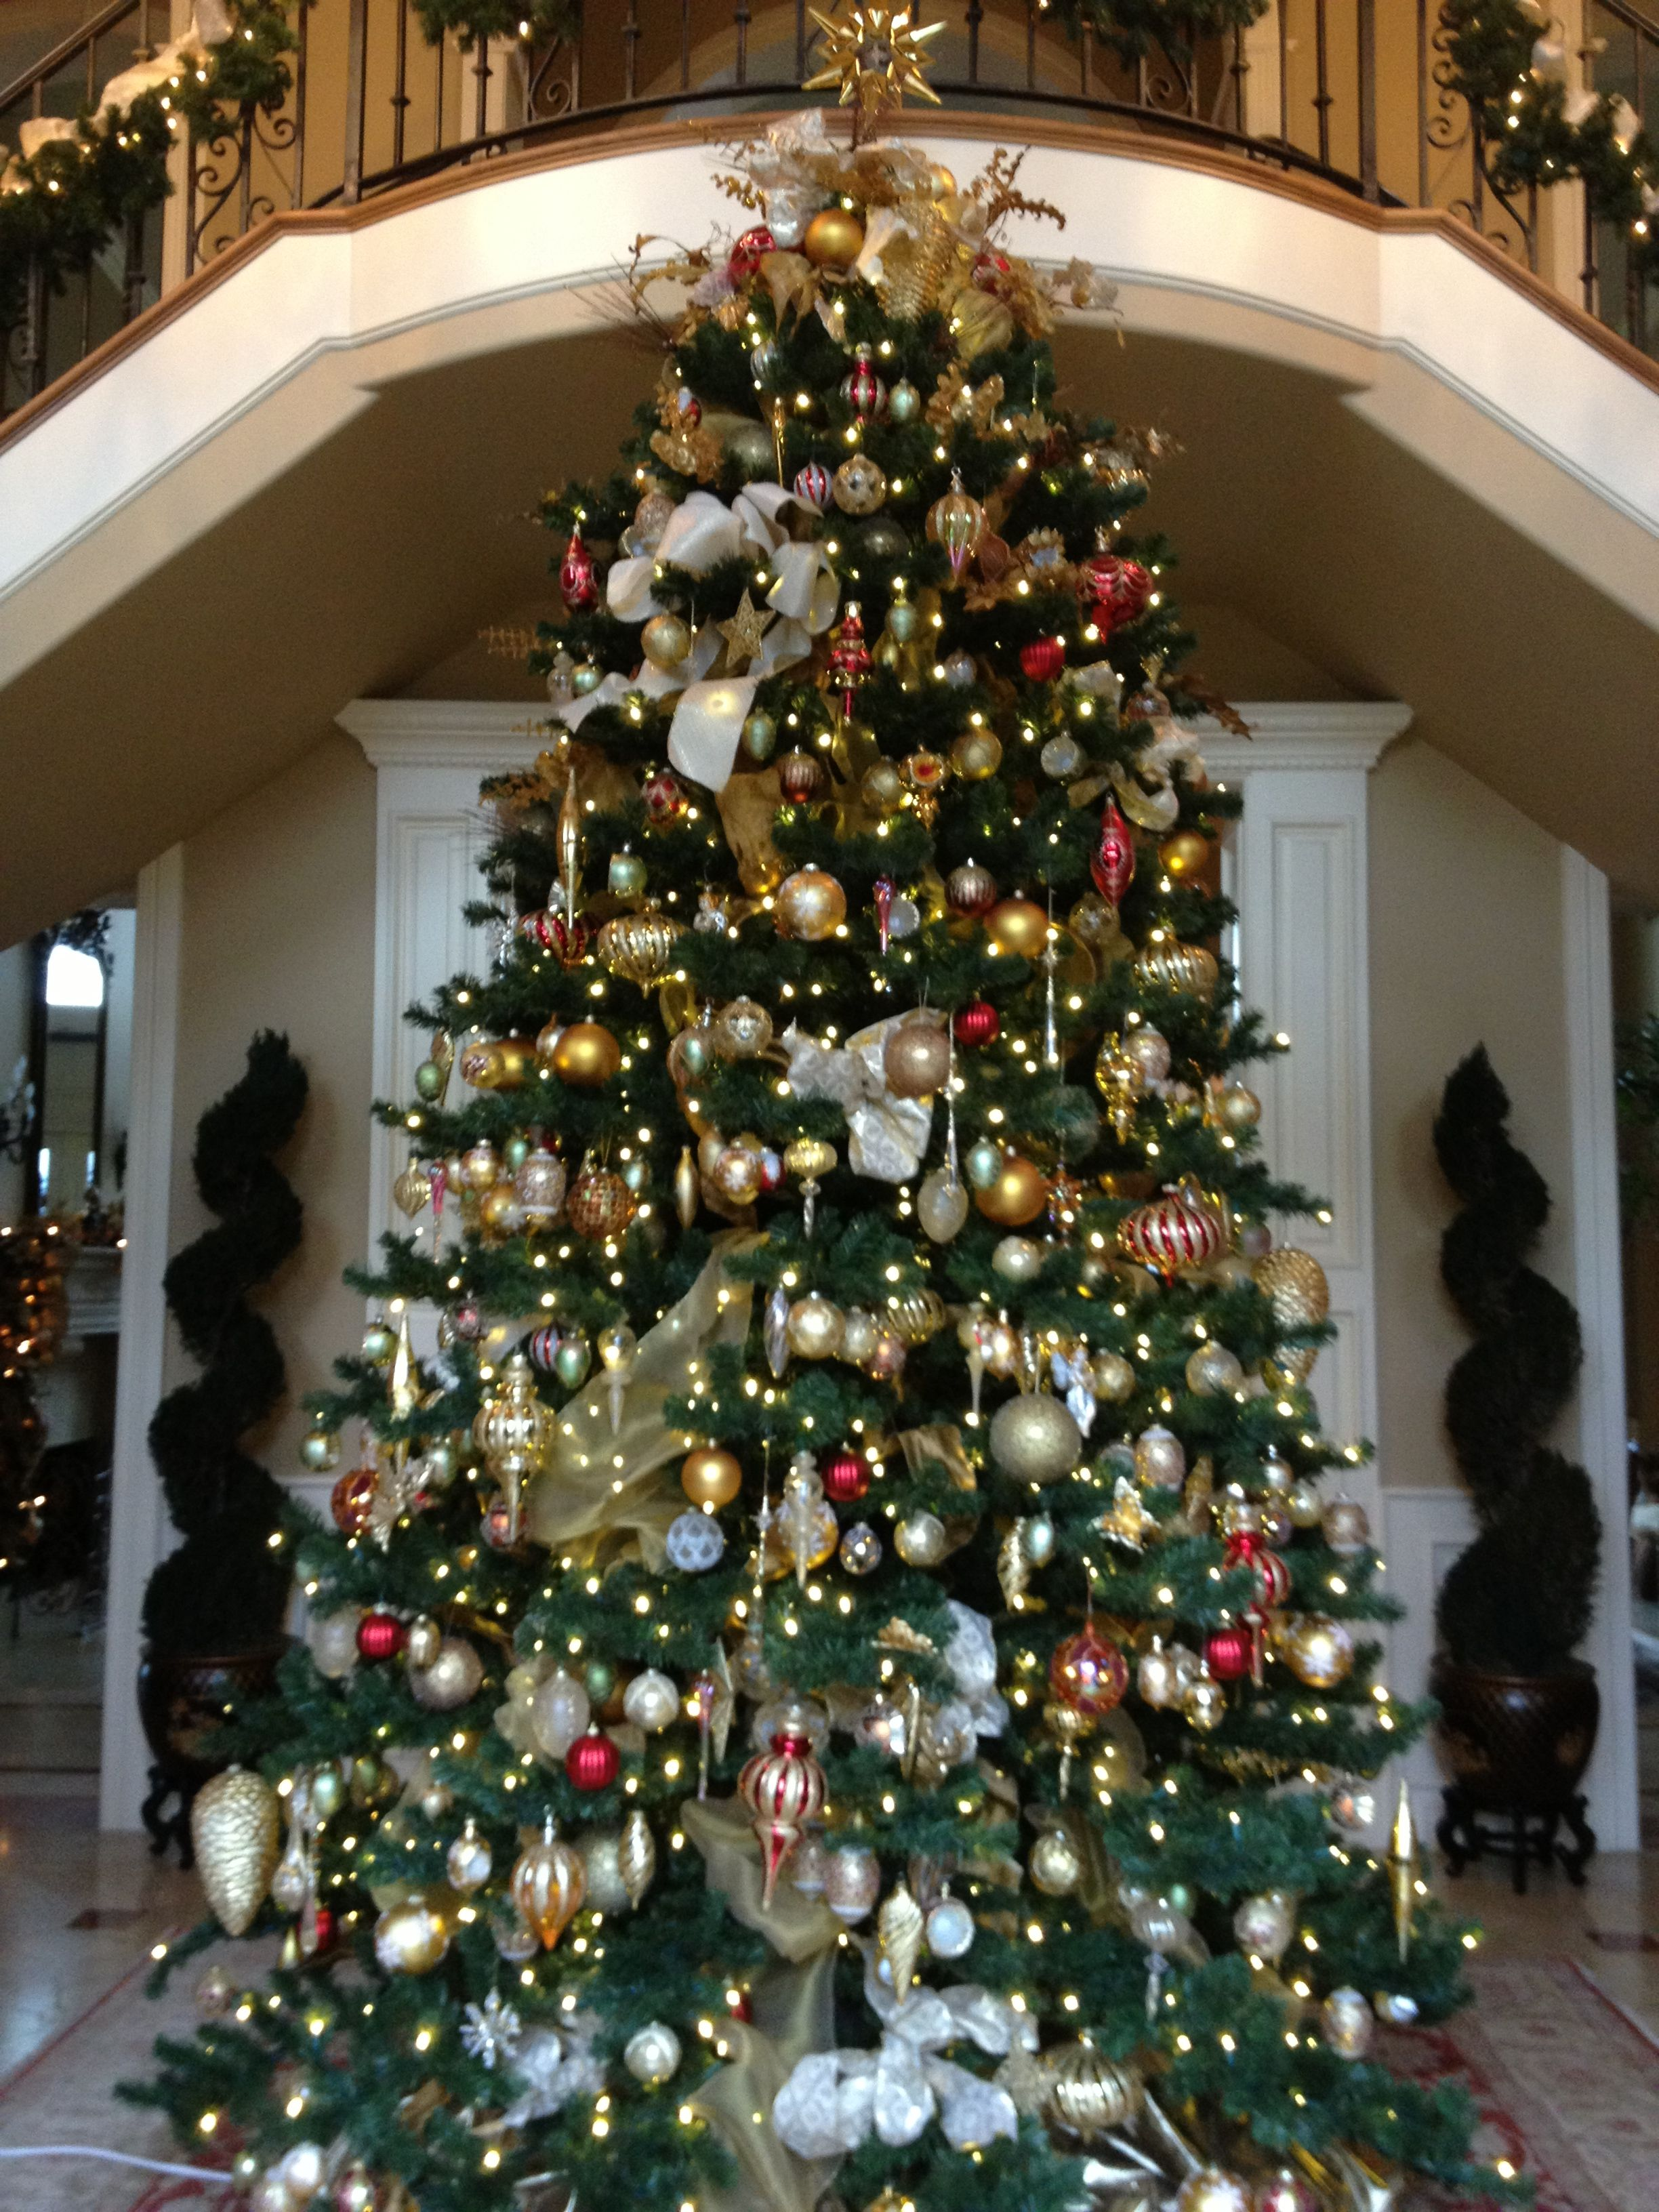 20 Ft Christmas Tree.A Clients 20ft Christmas Tree I Decorated This Year